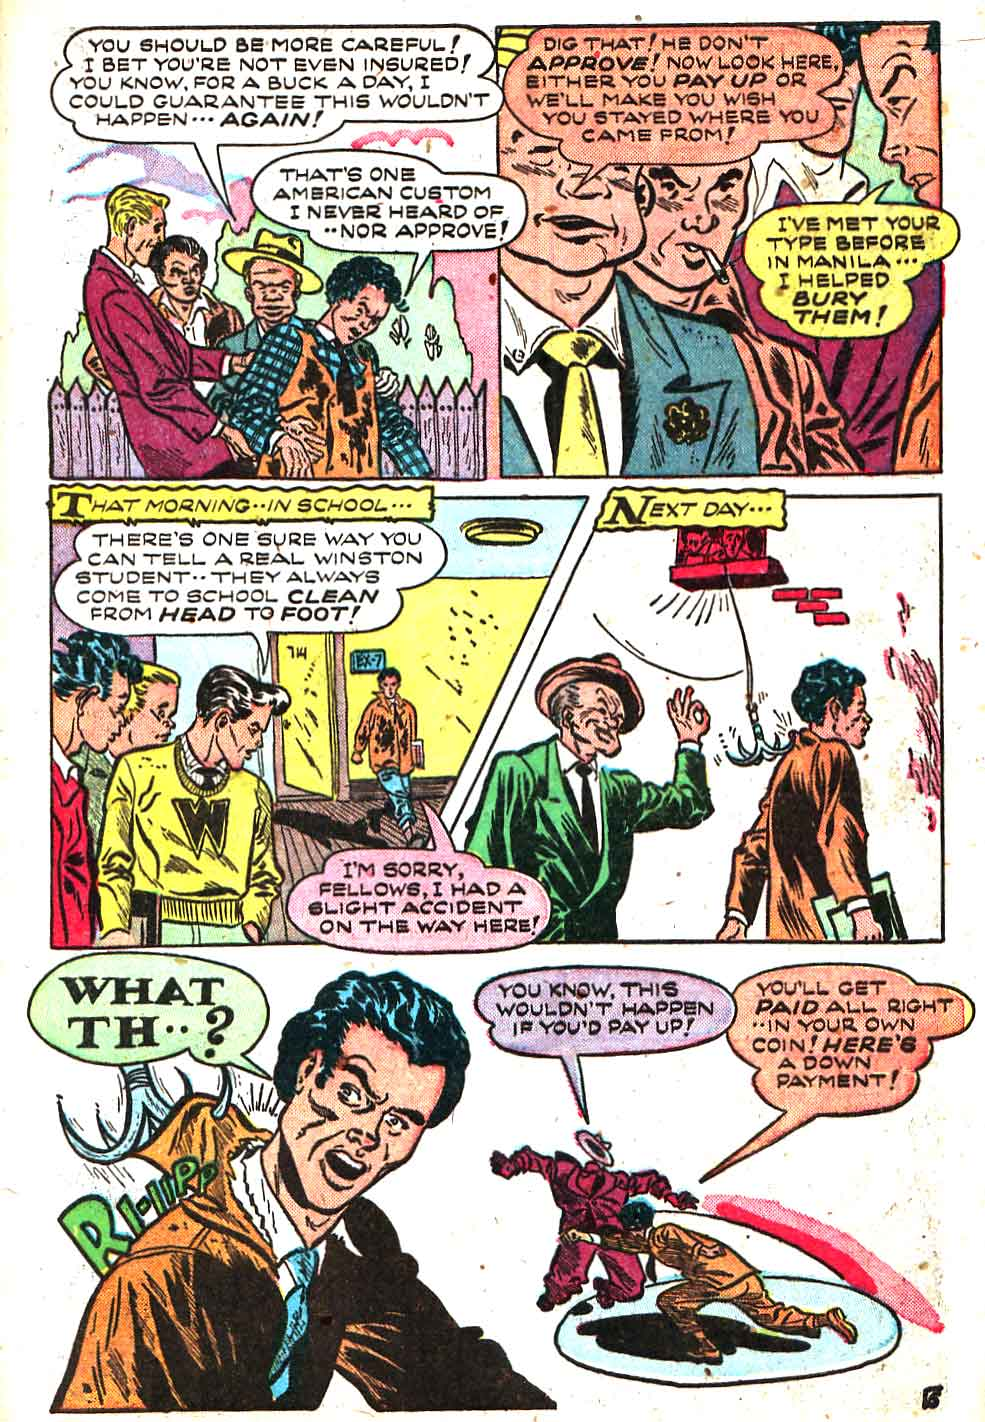 Sugar Bowl v1 #1 golden age comic book page art by Alex Toth